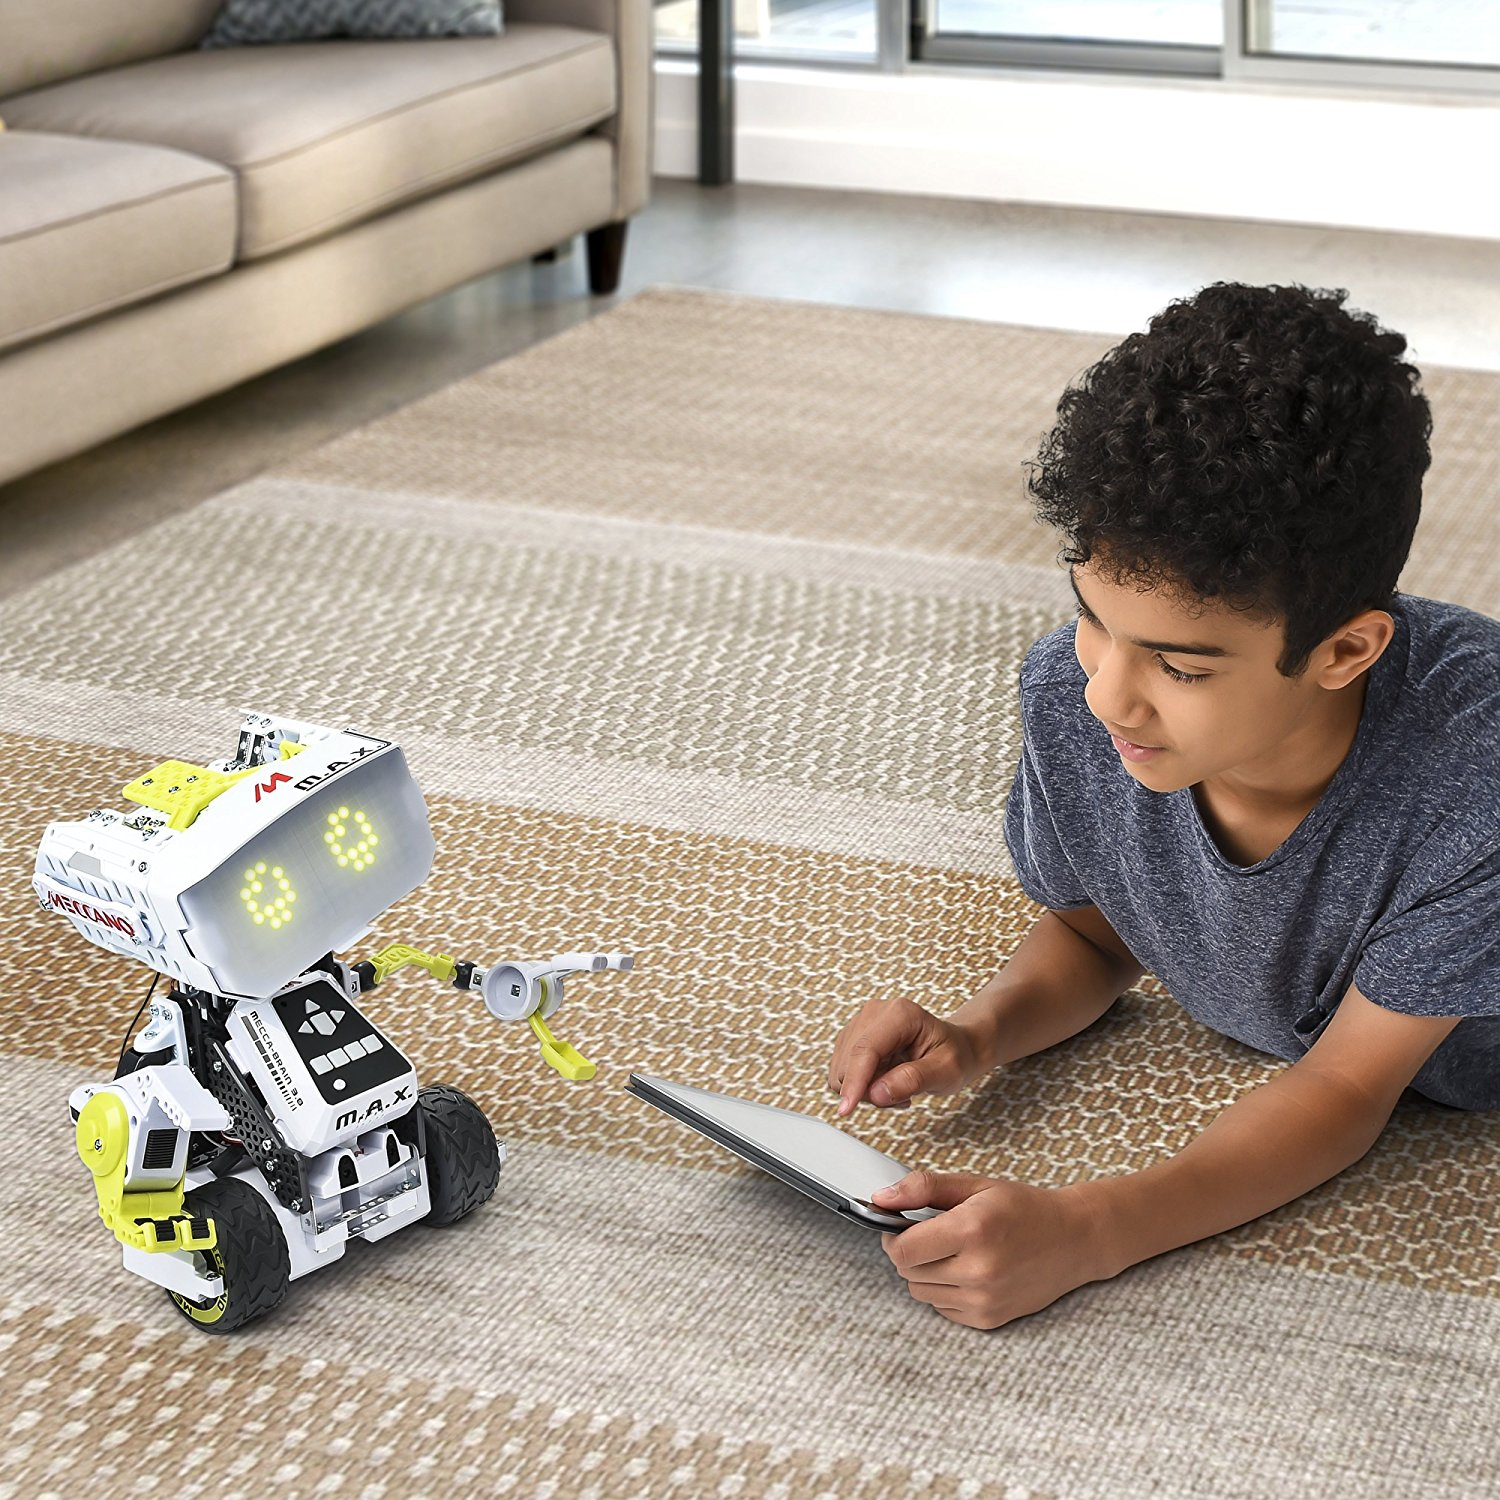 M.A.X. Robotic Interactive Toy